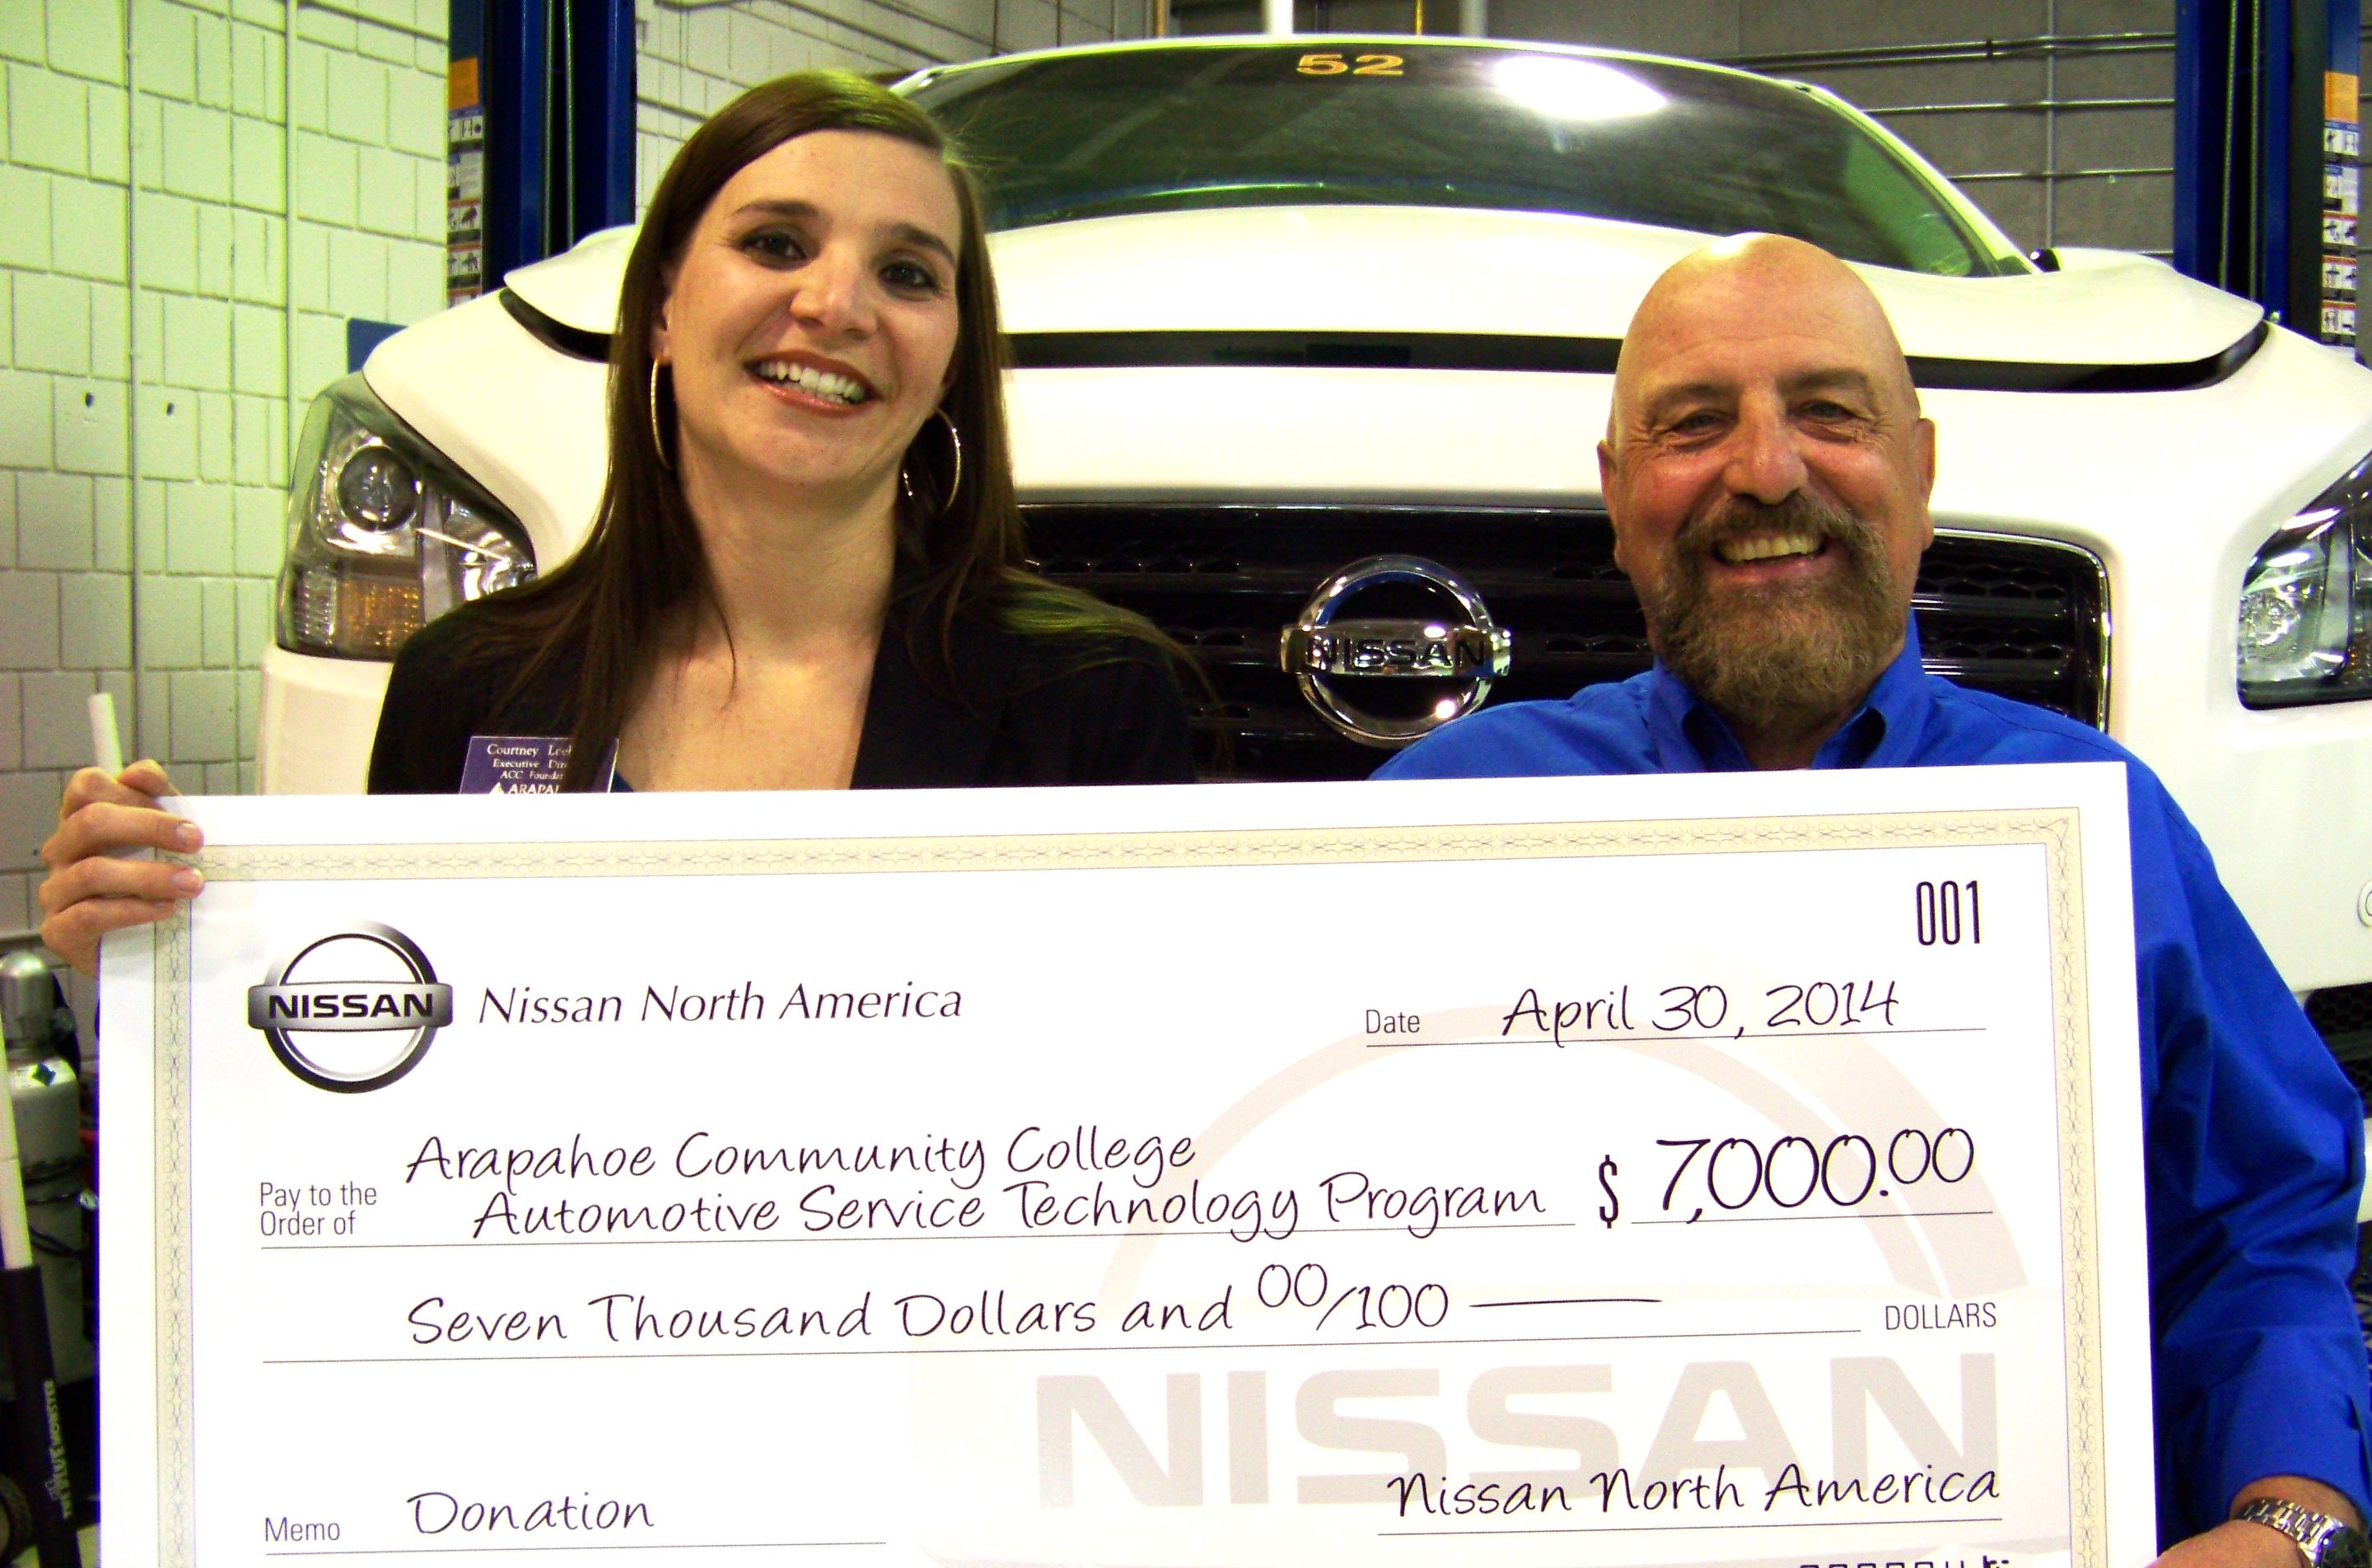 Courtney Loehfelm Executive Director Of The Acc Foundation And Jerry Viola Director Of The Acc Automotive Service Technology Pr Nissan North America America